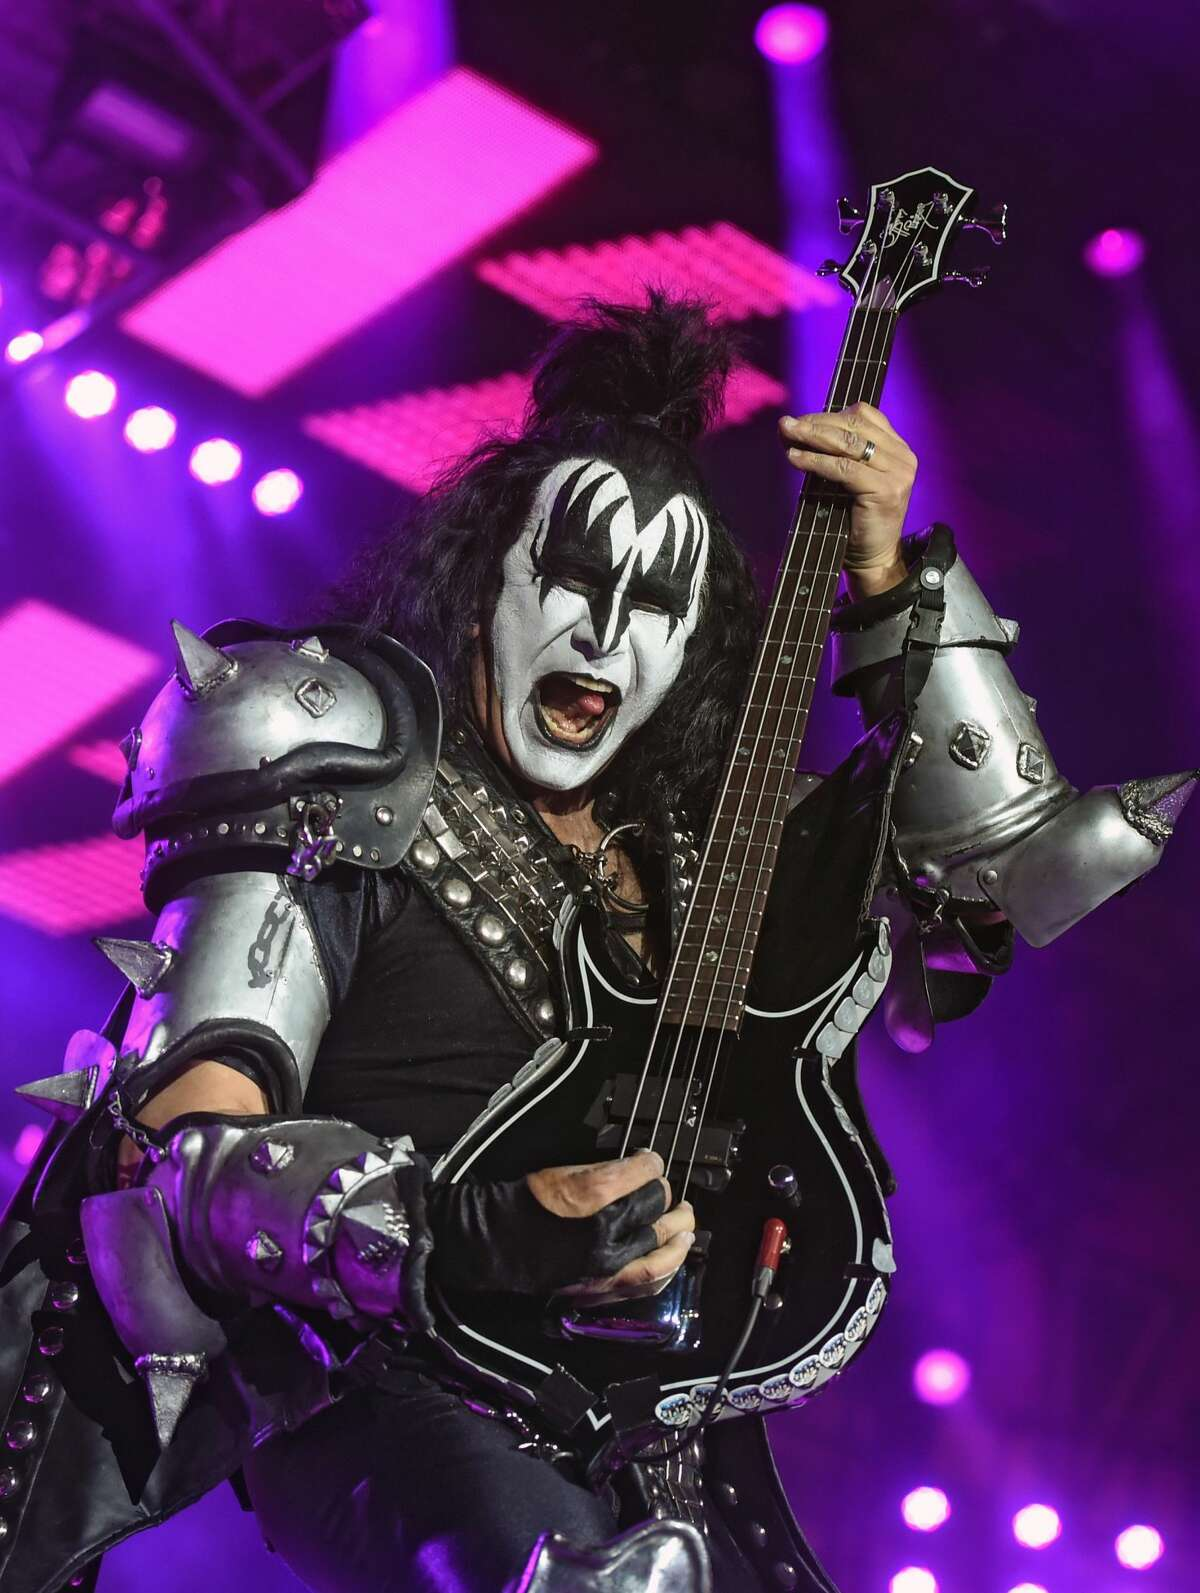 Kiss:The rock band will be performing at the Smart Financial Centre on Tuesday, Sept. 26 at 8 p.m. More Details: www.smartfinancialcentre.net